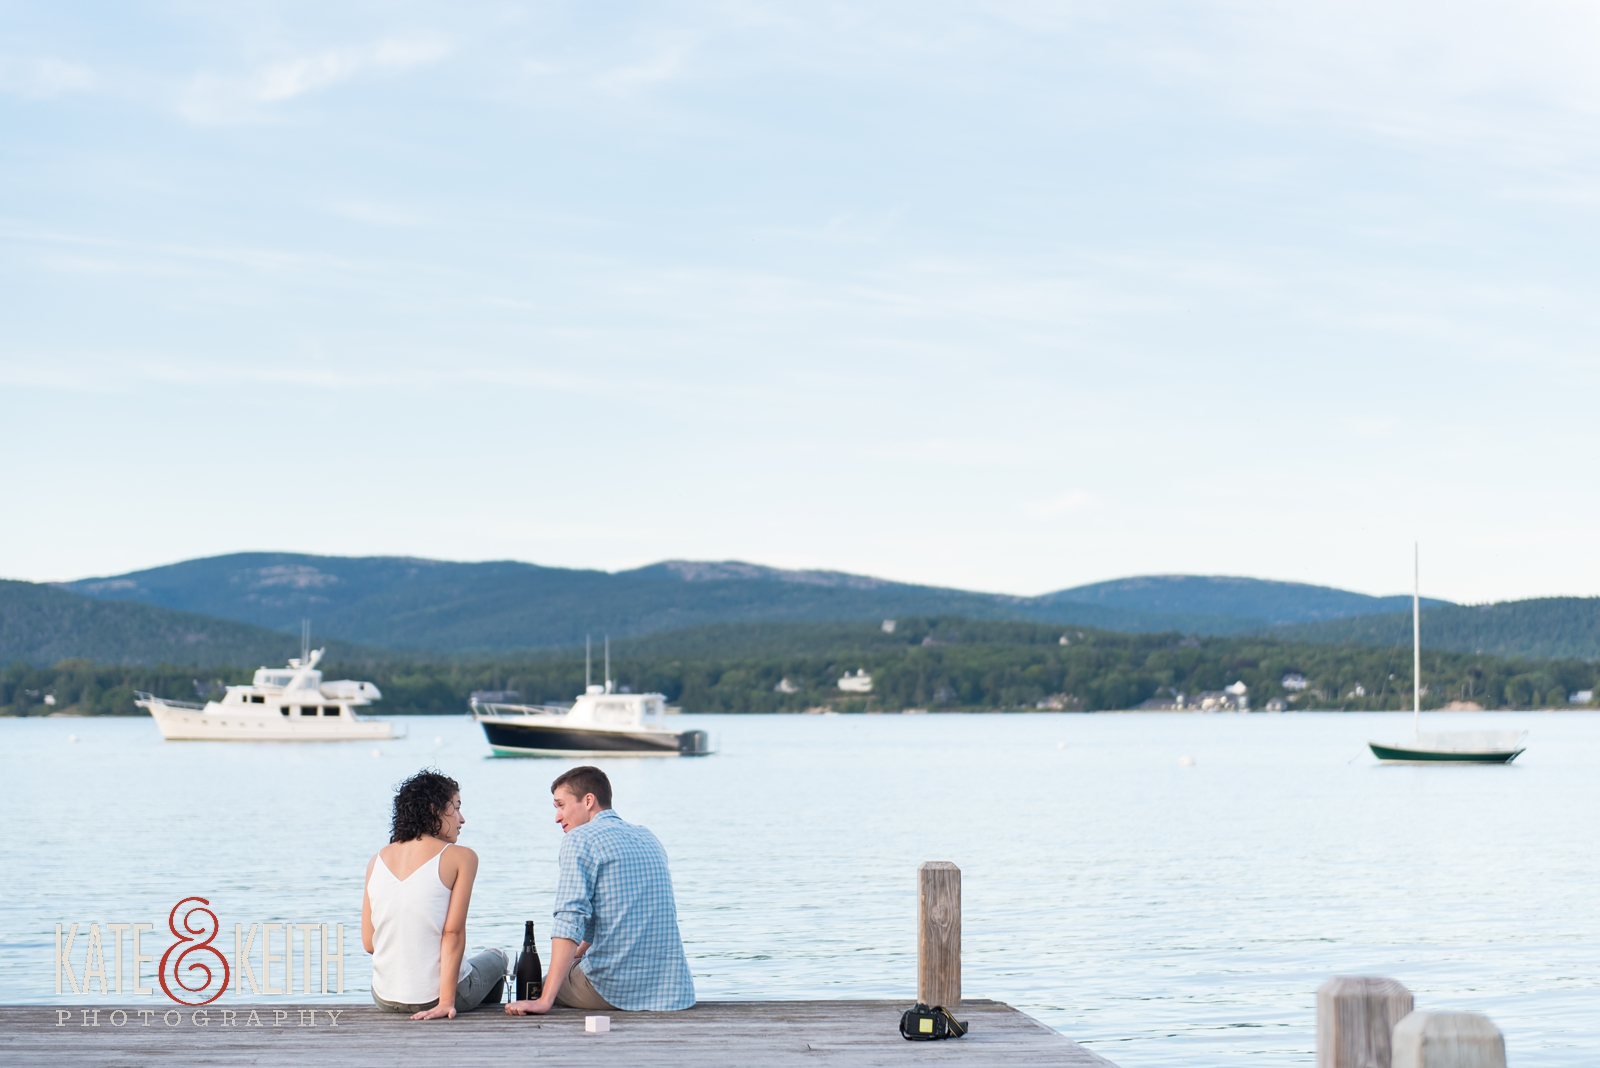 champagne celebration, celebratory toast, surprise proposal, proposal in Acadia National Park, Southwest Harbor, Mount Desert Island, seaside, sunset proposal, engagement, getting engaged in Acadia National Park, rowboat, coastal Maine, New England, sailboats, dock, waterfront engagement